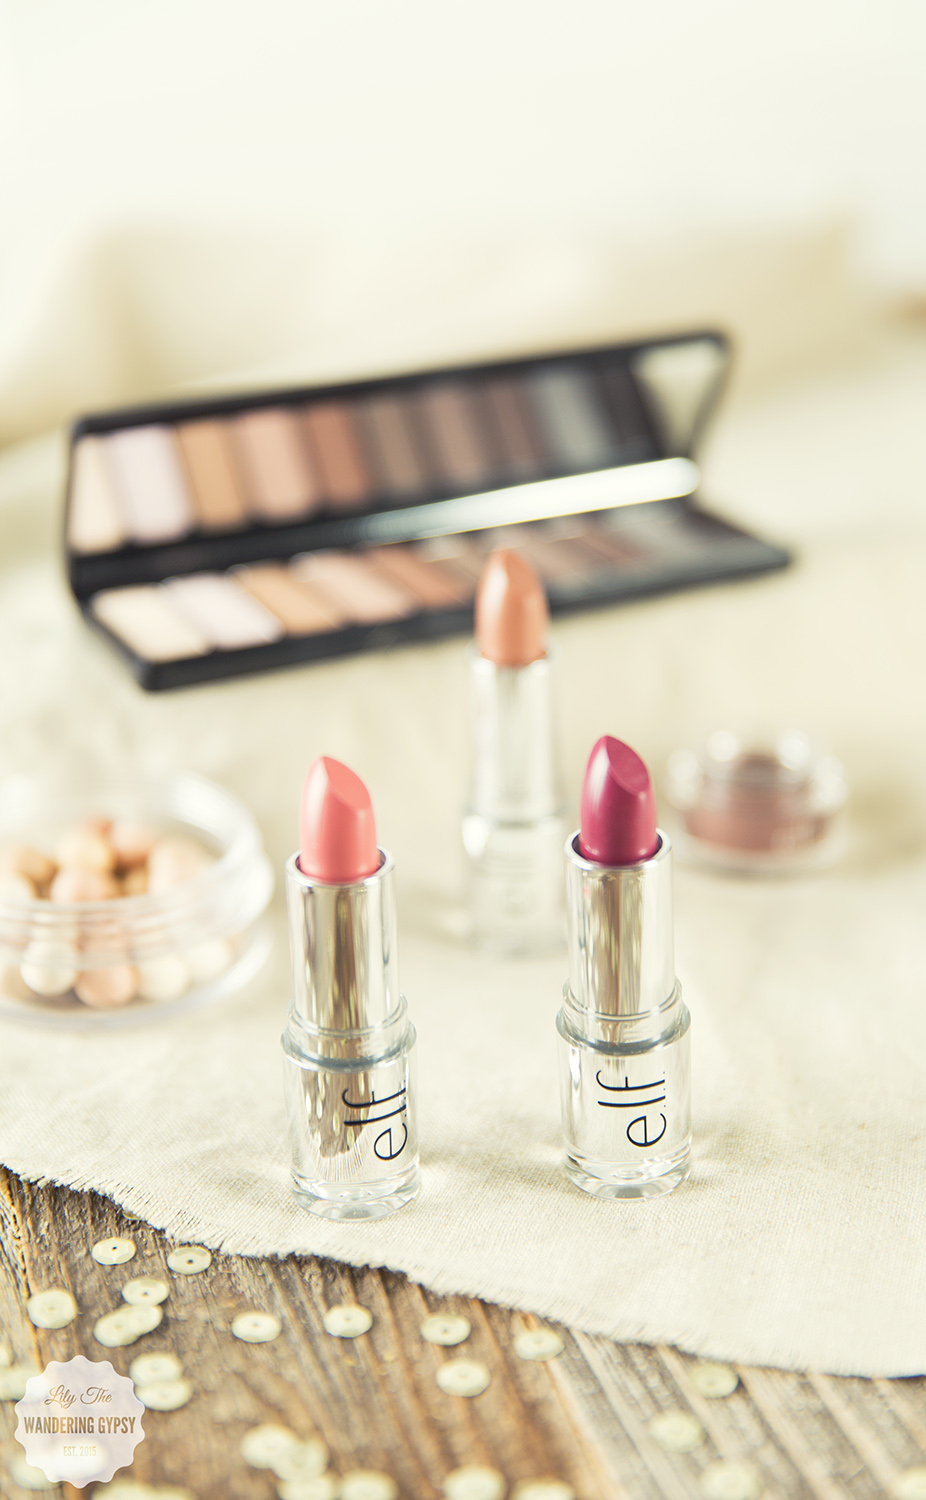 #PlayBeautifully with e.l.f. makeup + Lily The Wandering Gypsy